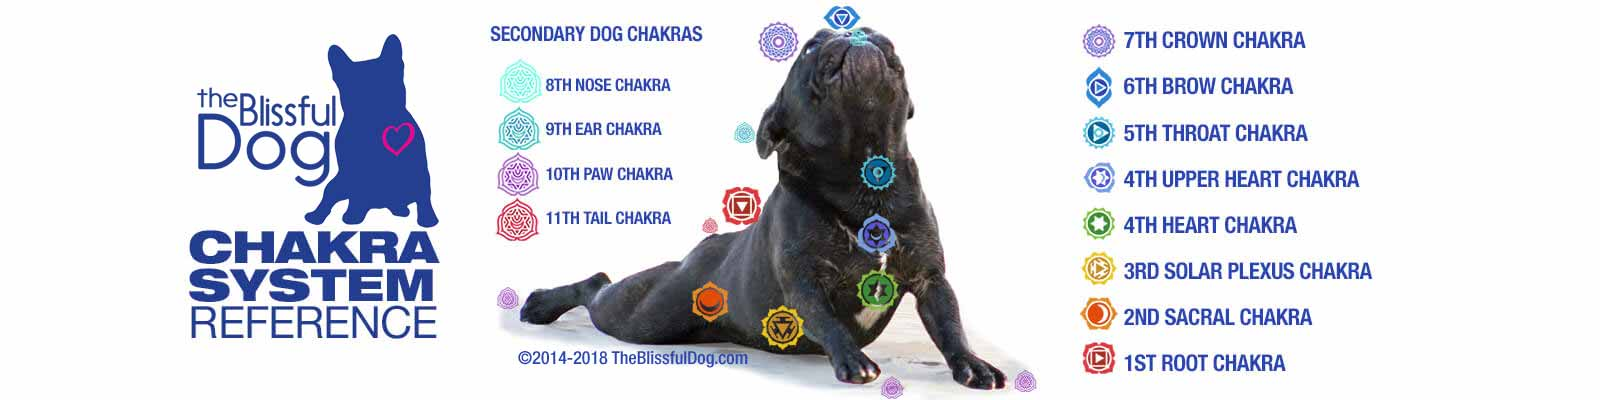 Dog Chakra Healing | Holistic Healing for Dogs